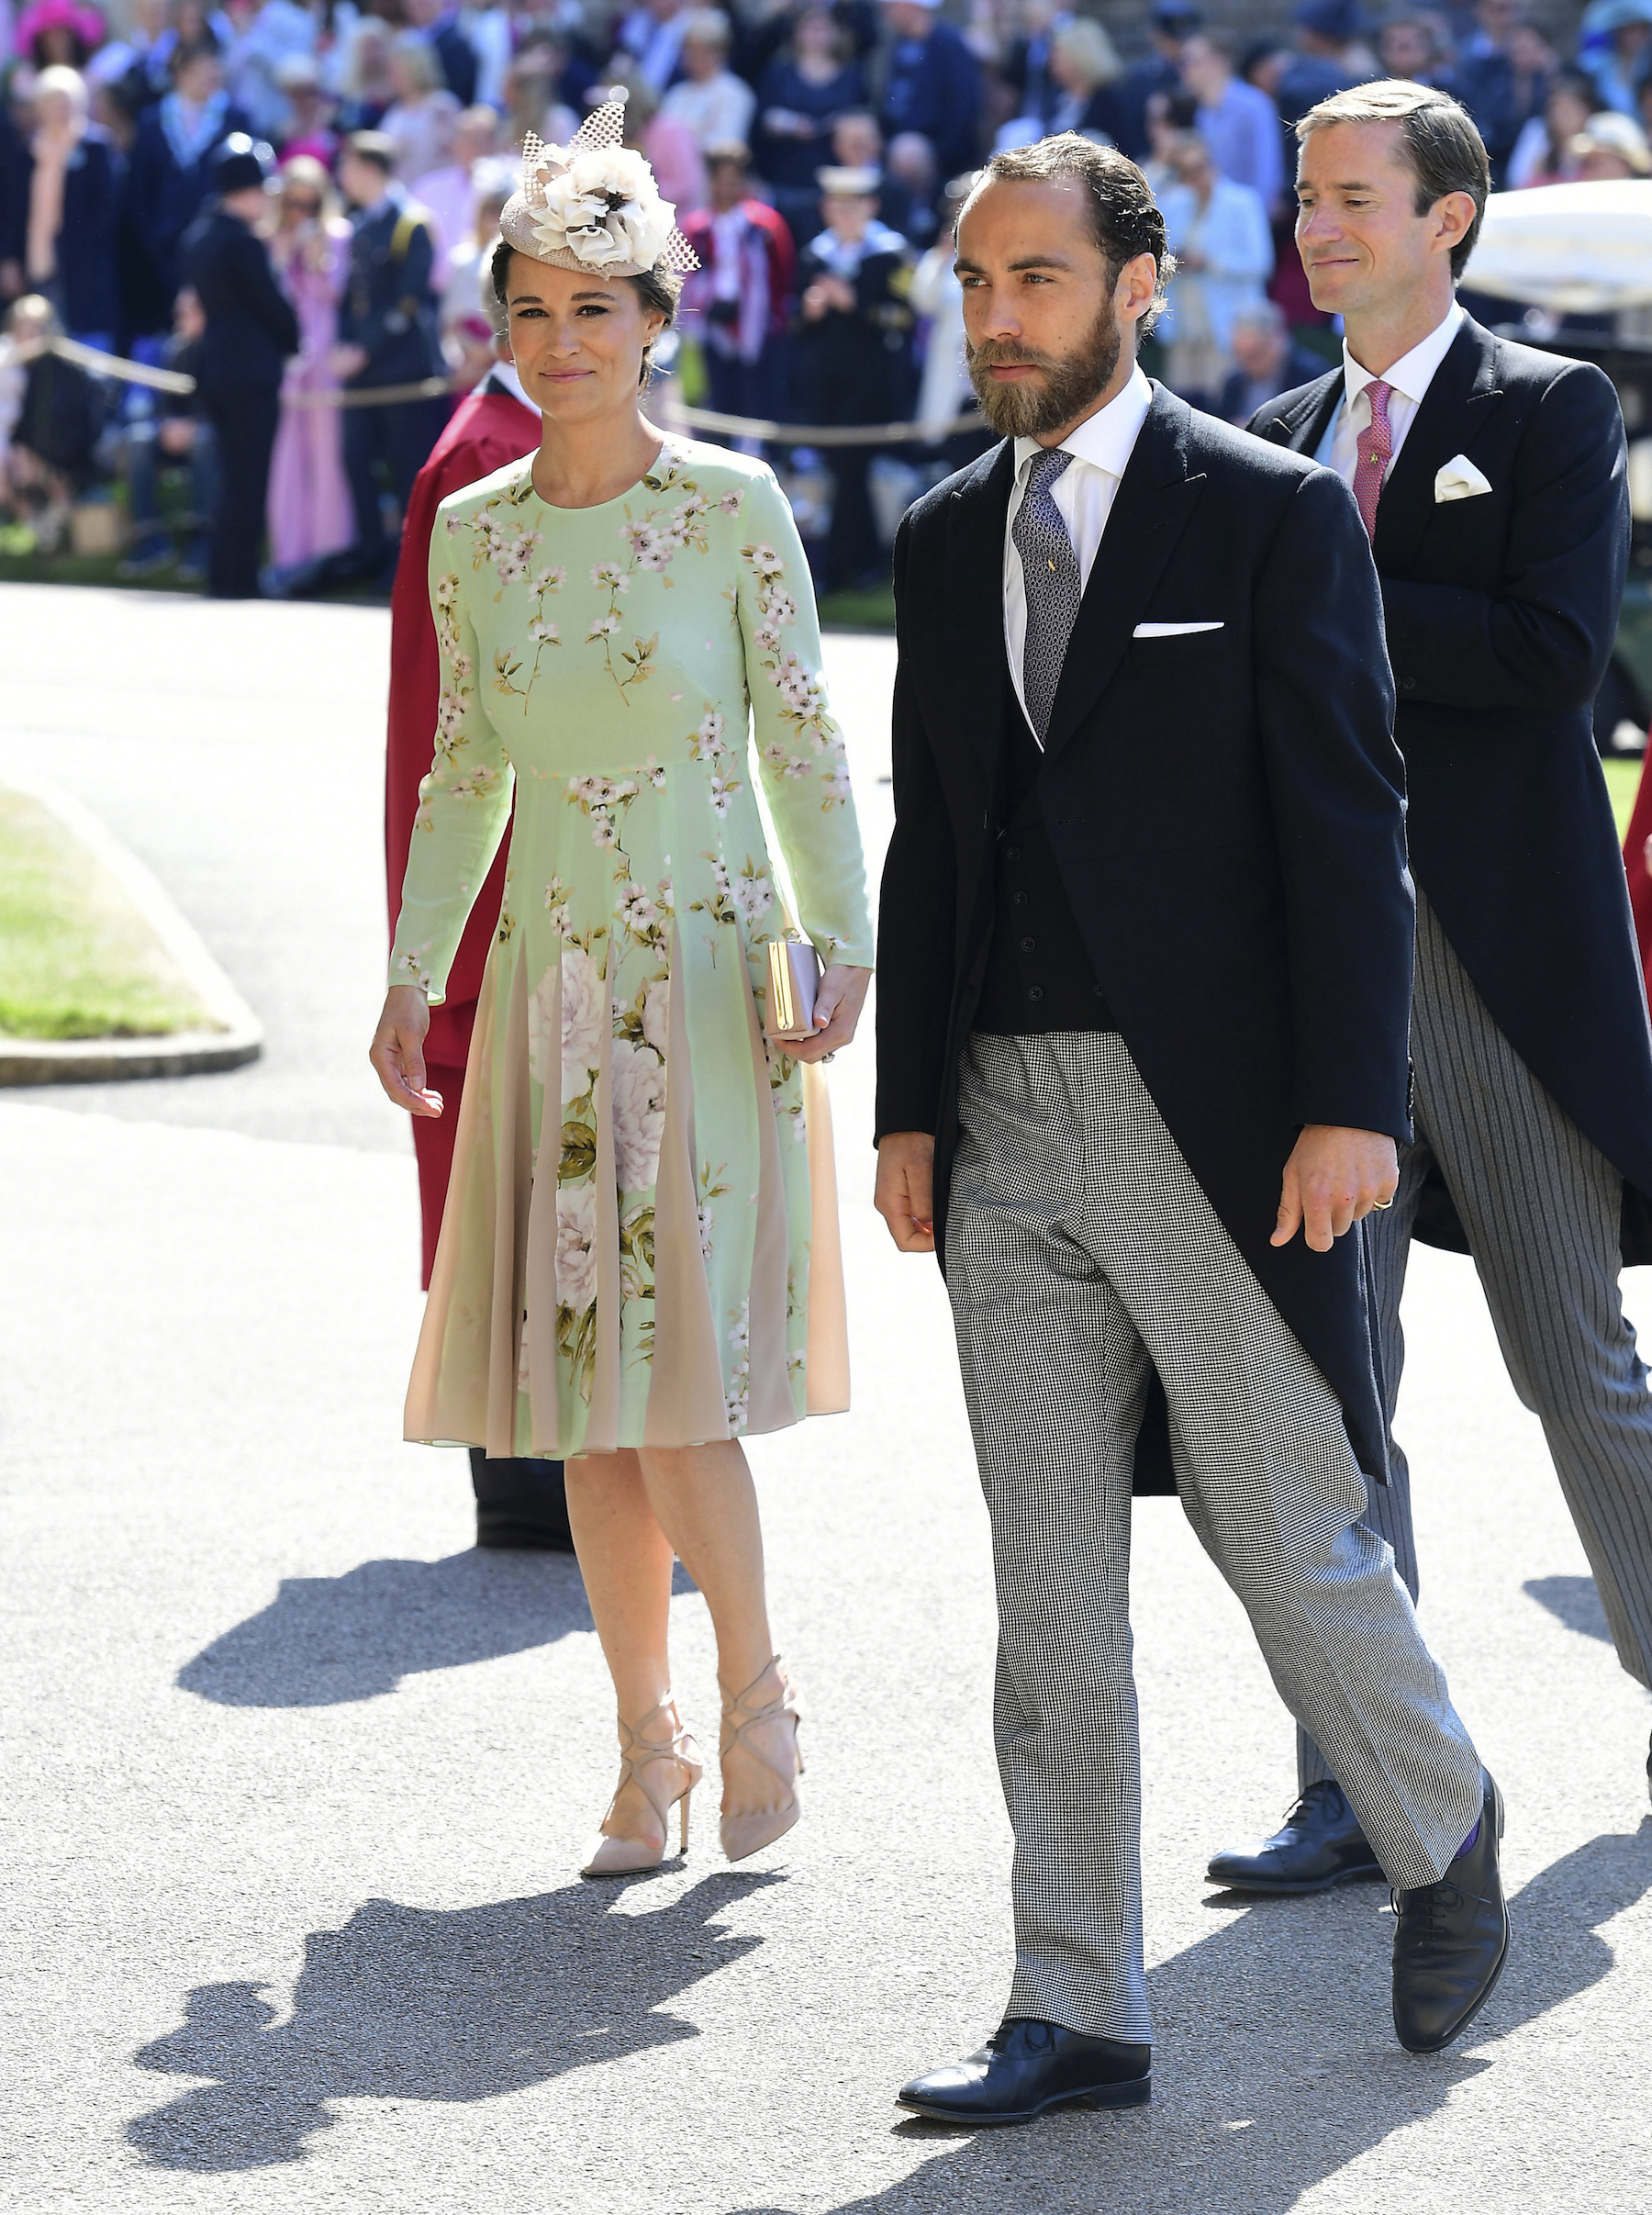 <div class='meta'><div class='origin-logo' data-origin='AP'></div><span class='caption-text' data-credit='Ian West/PA Wire'>Pippa Middleton and James Middleton arrive at St George's Chapel at Windsor Castle for the wedding of Meghan Markle and Prince Harry.</span></div>